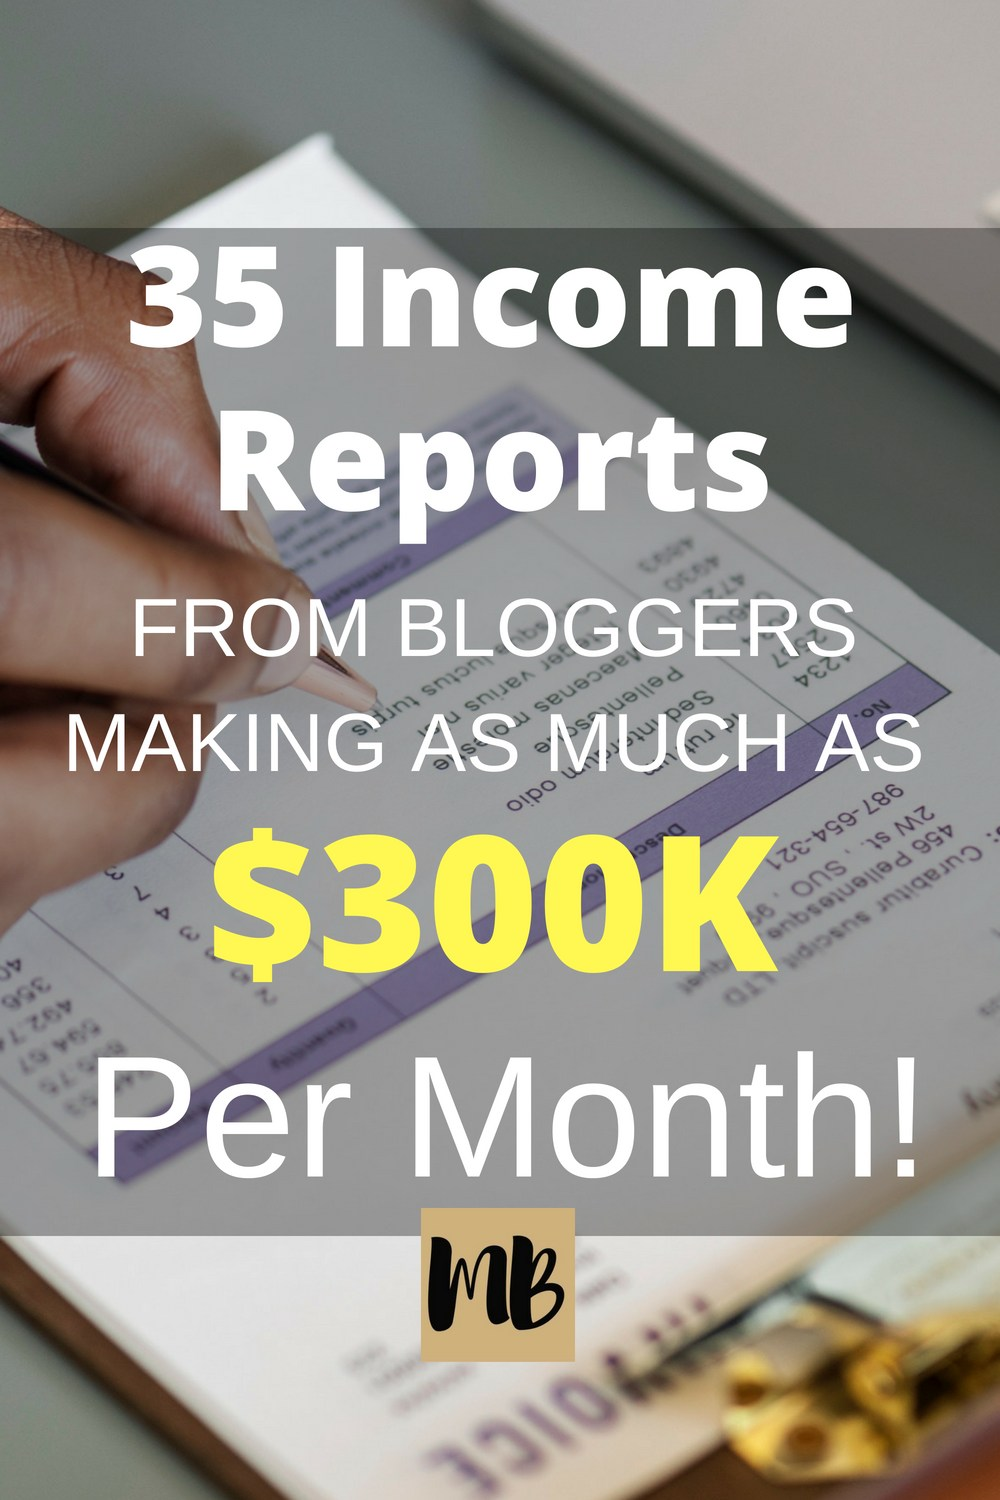 35 Bloggers Making $1,000 to $300,000 Per Month